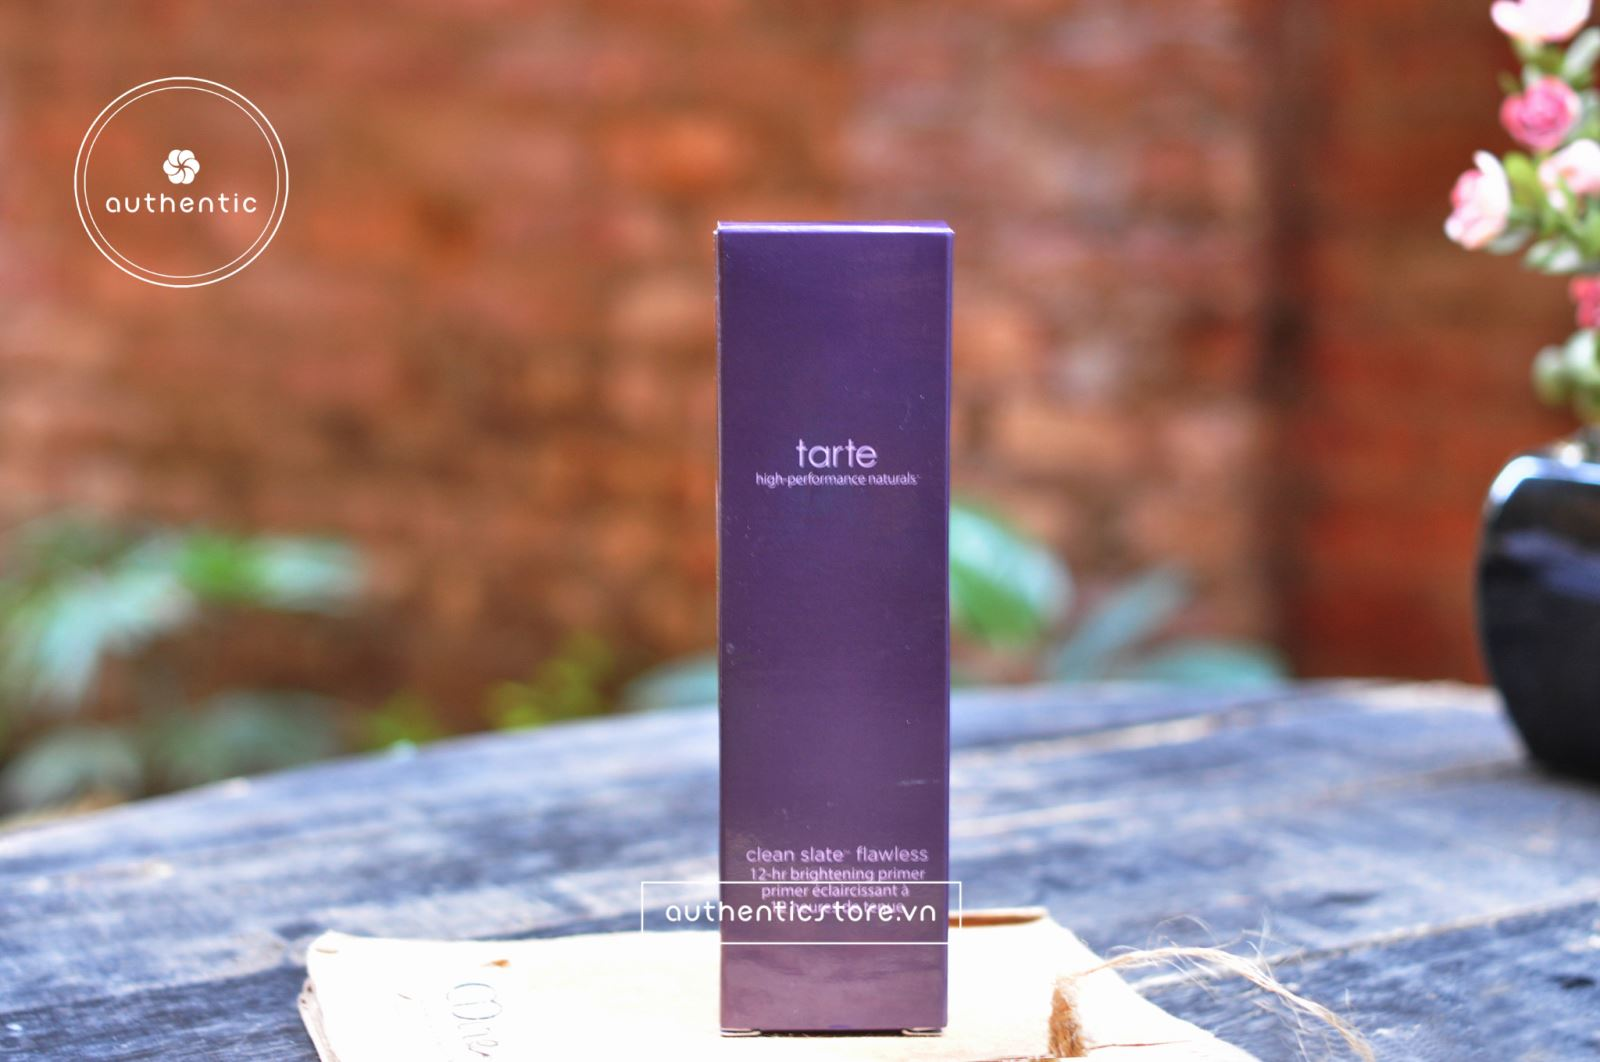 Tarte clean slate™ flawless  12-hr brightening primer.jpg